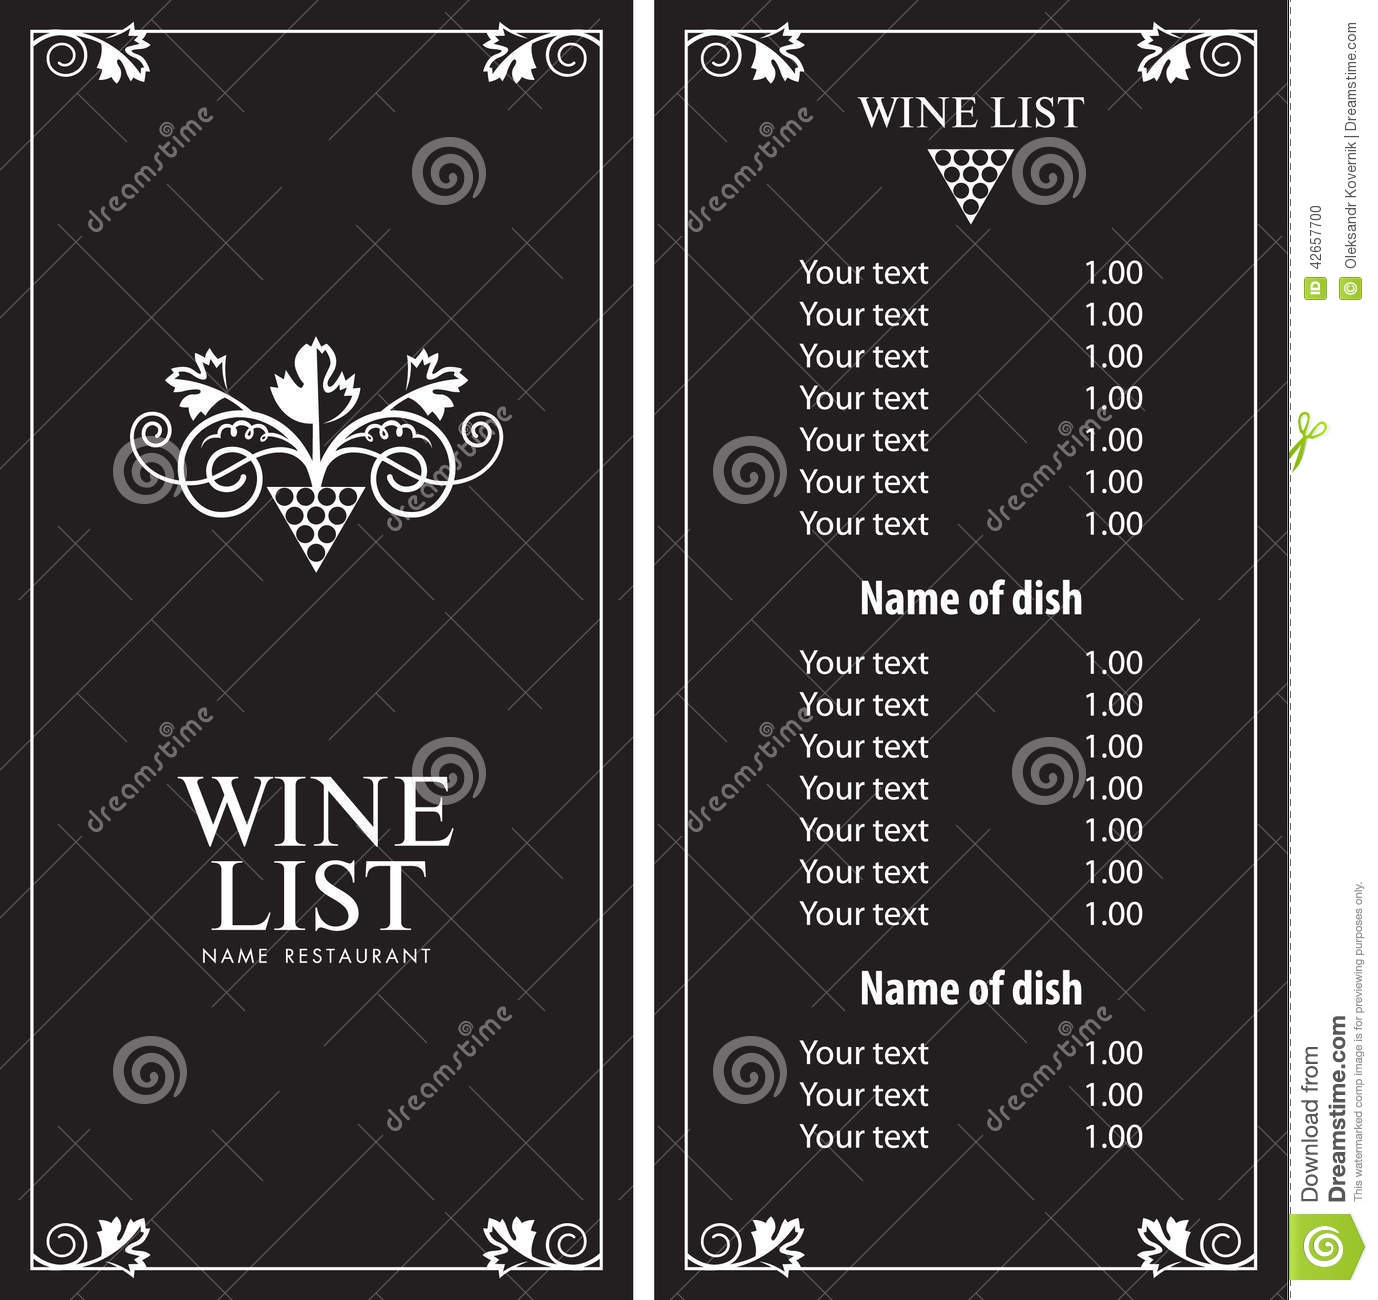 Wine Menu Templates – 31+ Free PSD, EPS Documents Download! | Free ...